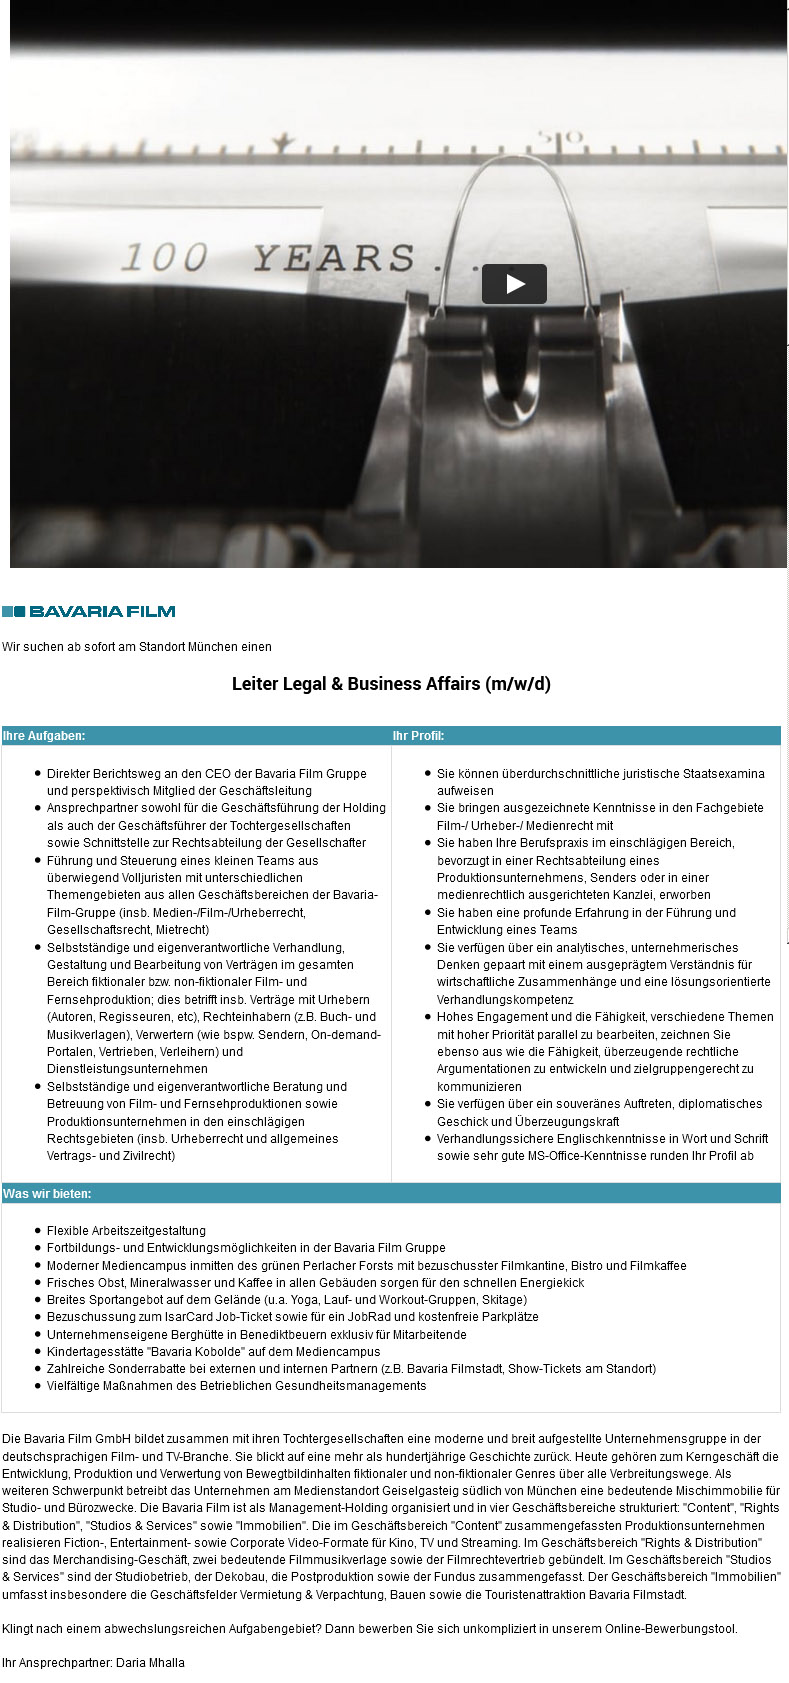 Leiter Legal & Business Affairs (m/w/d)